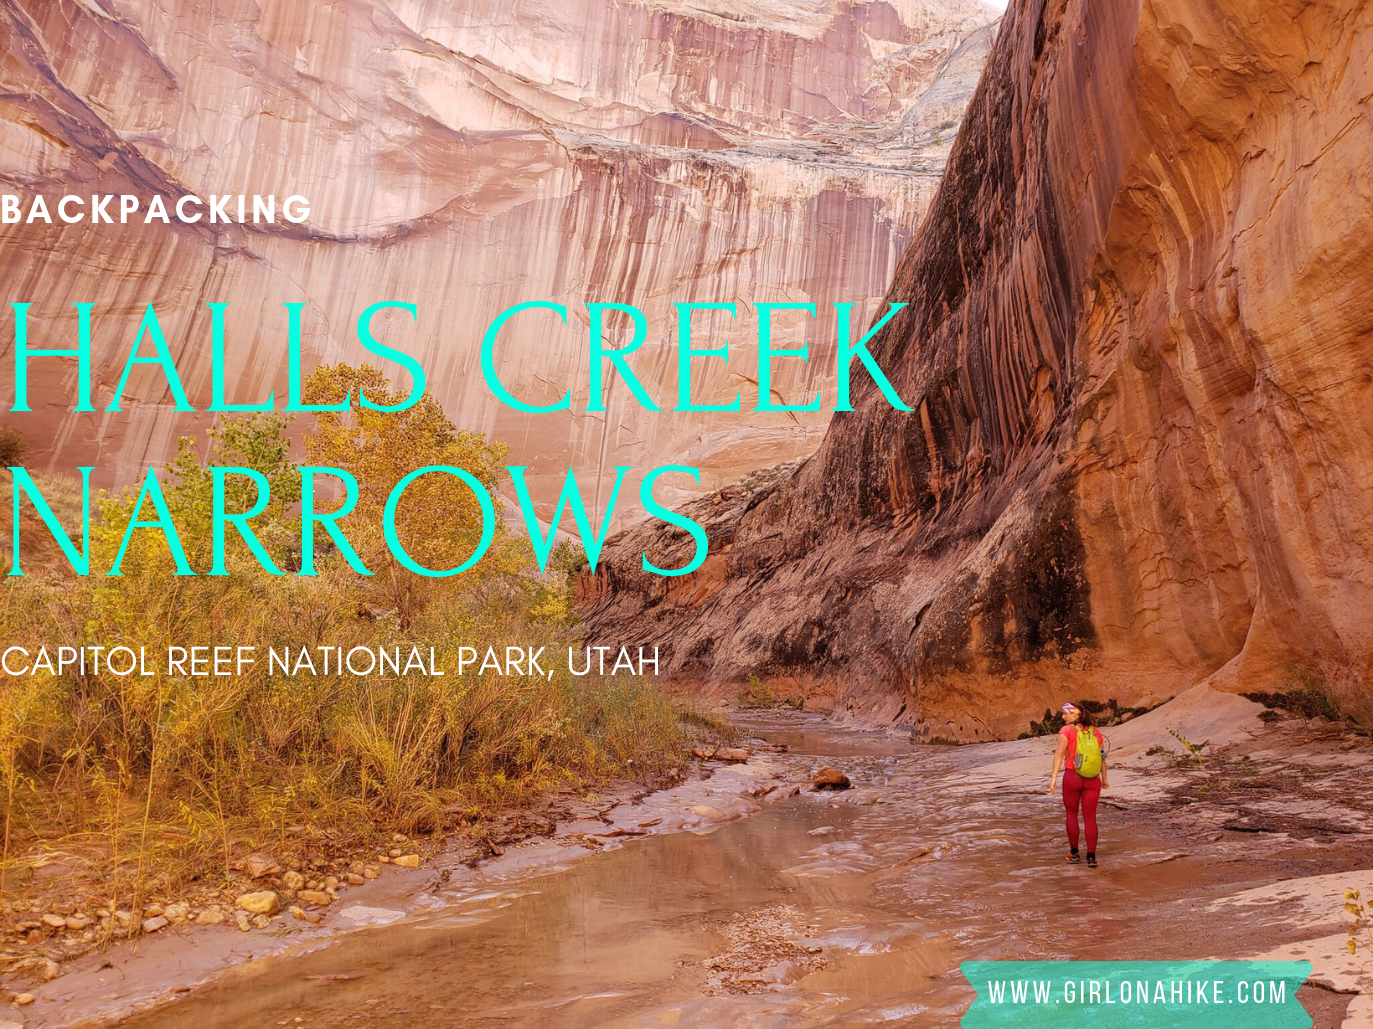 Backpacking Halls Creek Narrows, Capitol Reef National Park